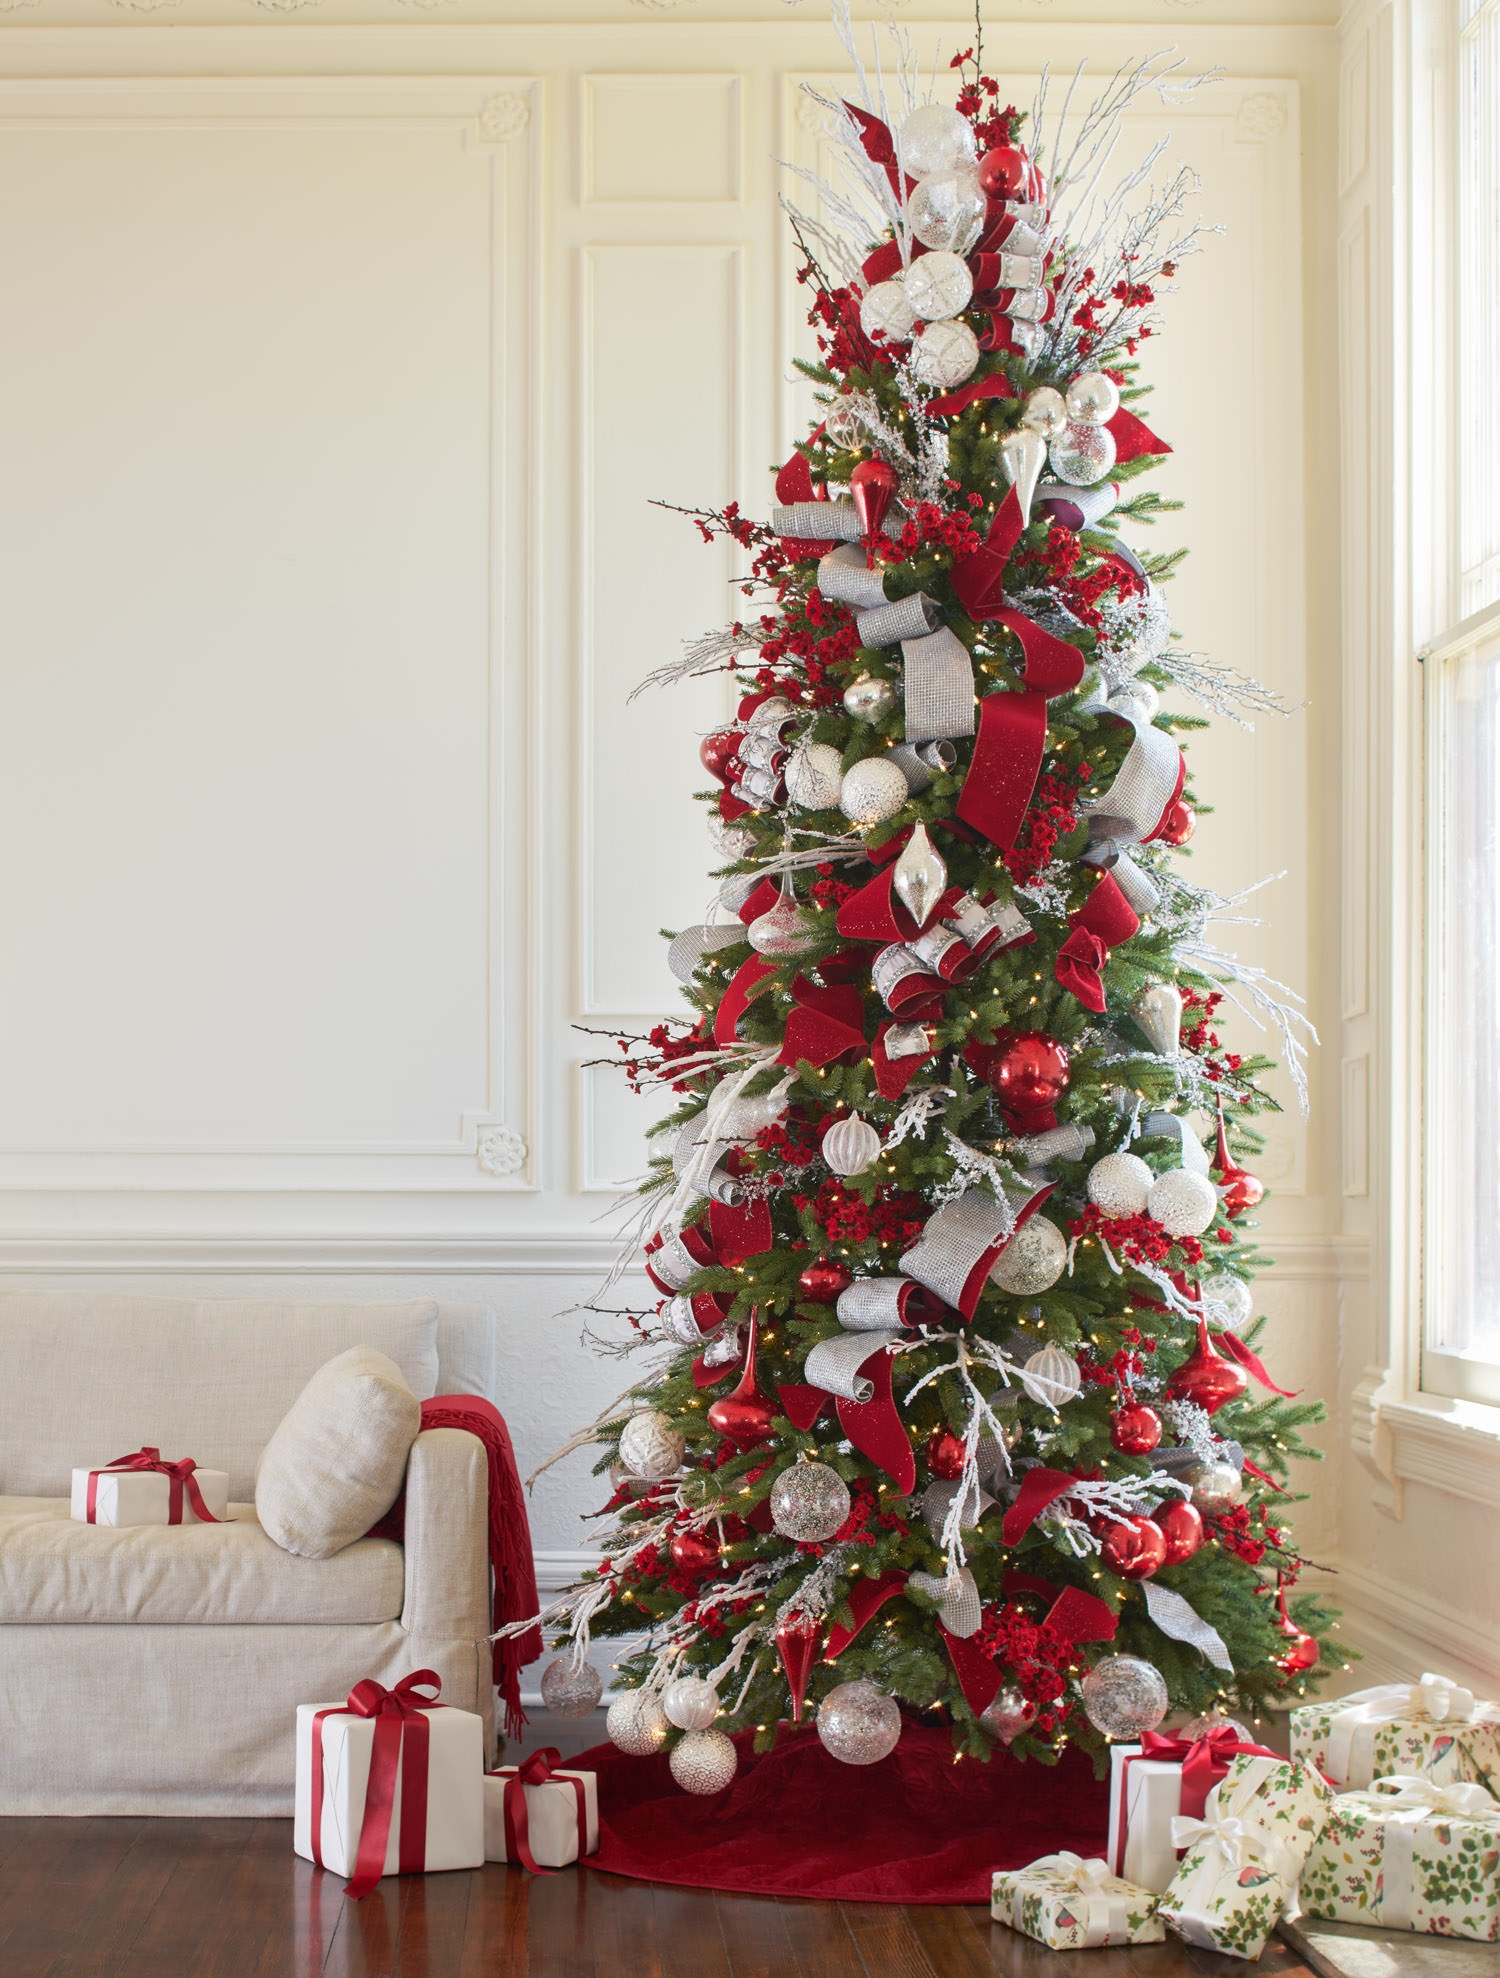 Pictures Of White Decorated Christmas Trees